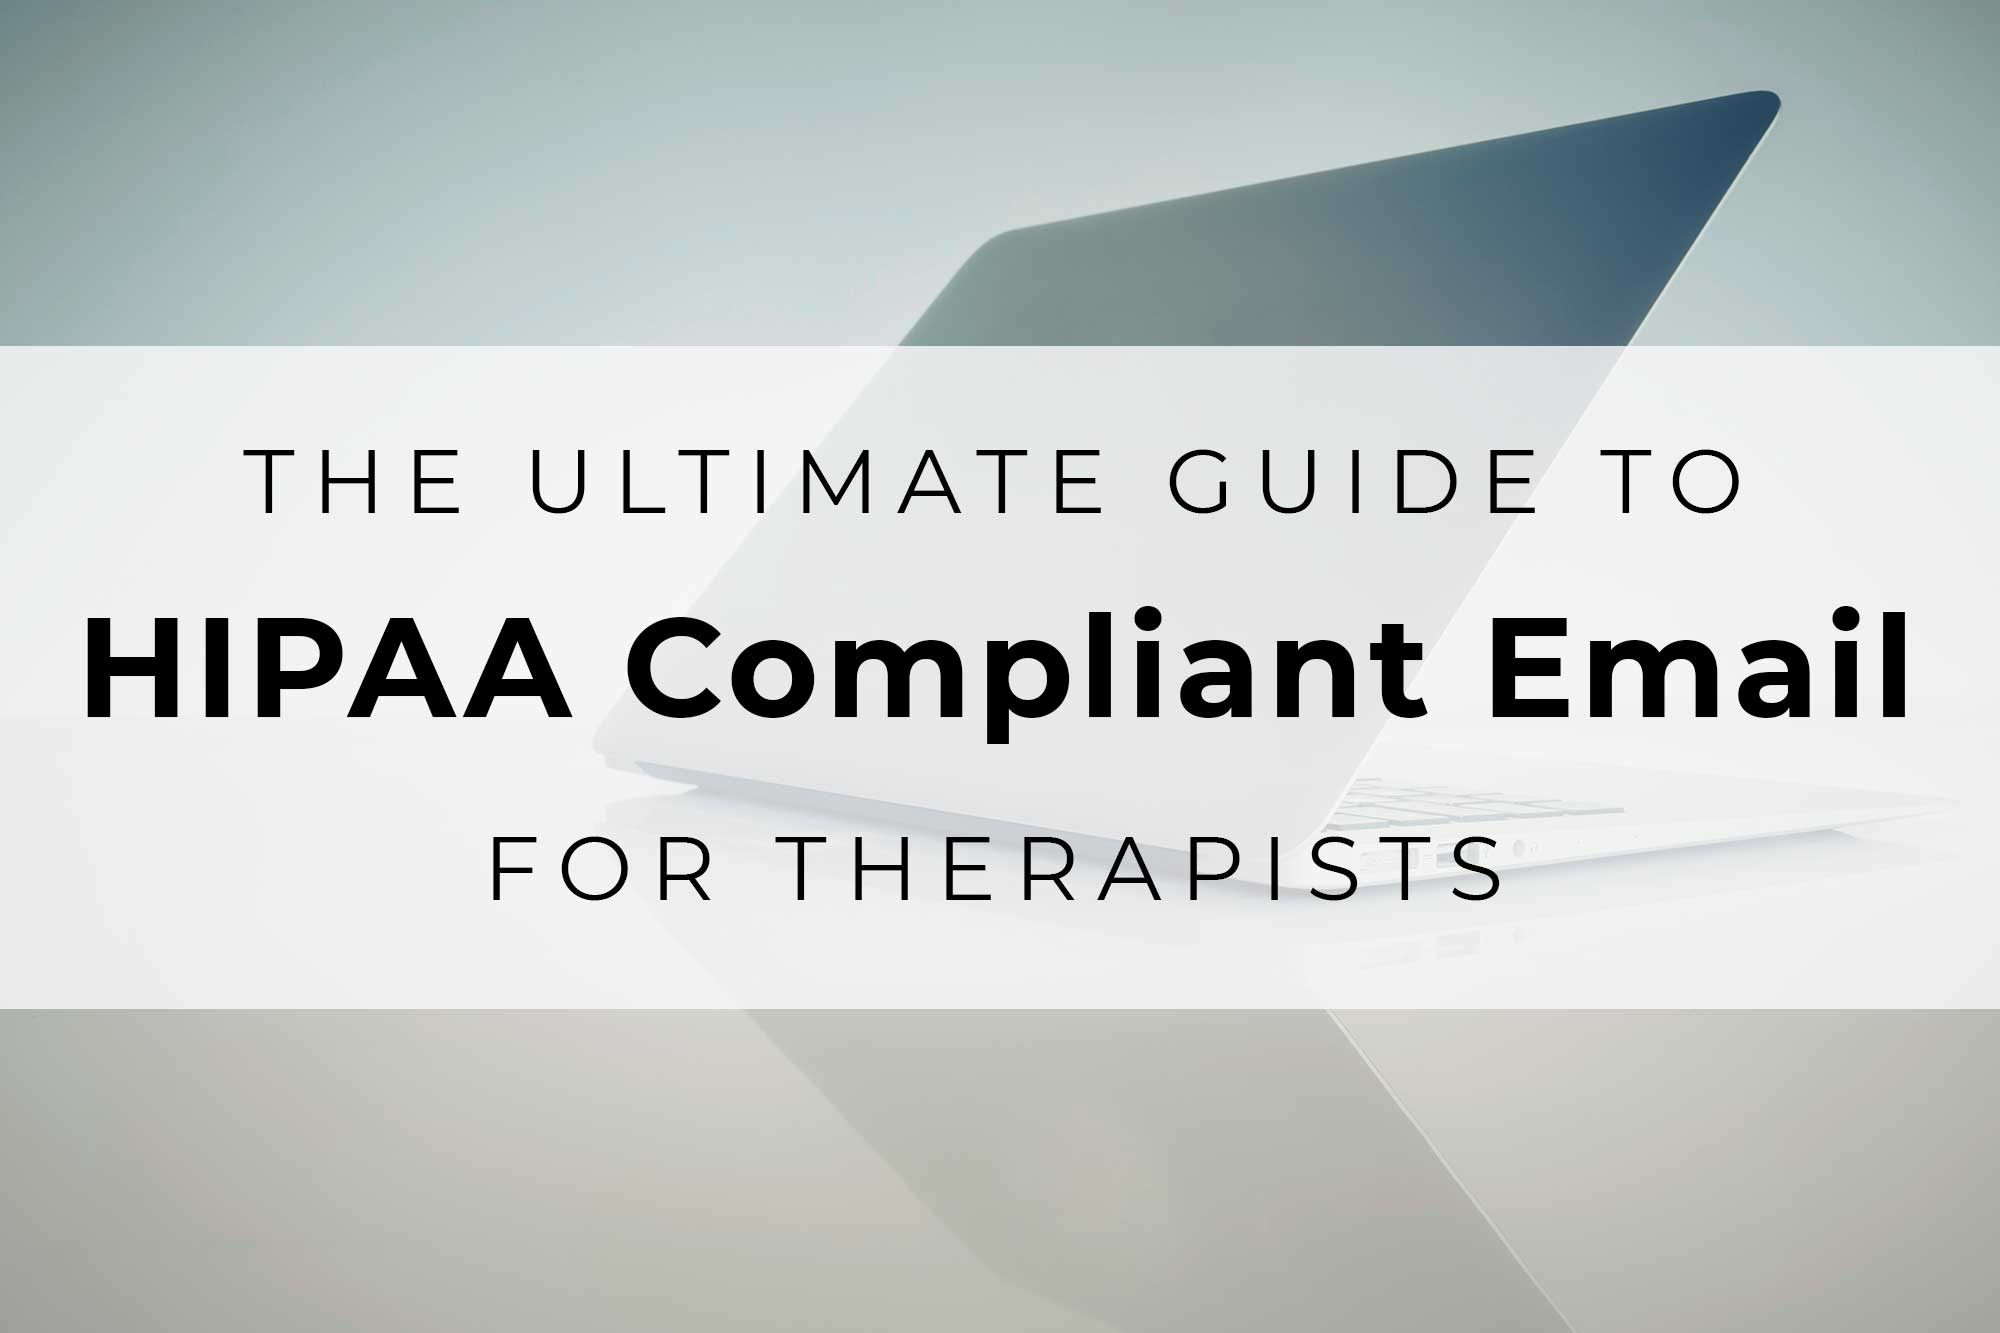 empathysites-web-guide-to-HIPAA-compliant-email-therapists-secure-forms-baa